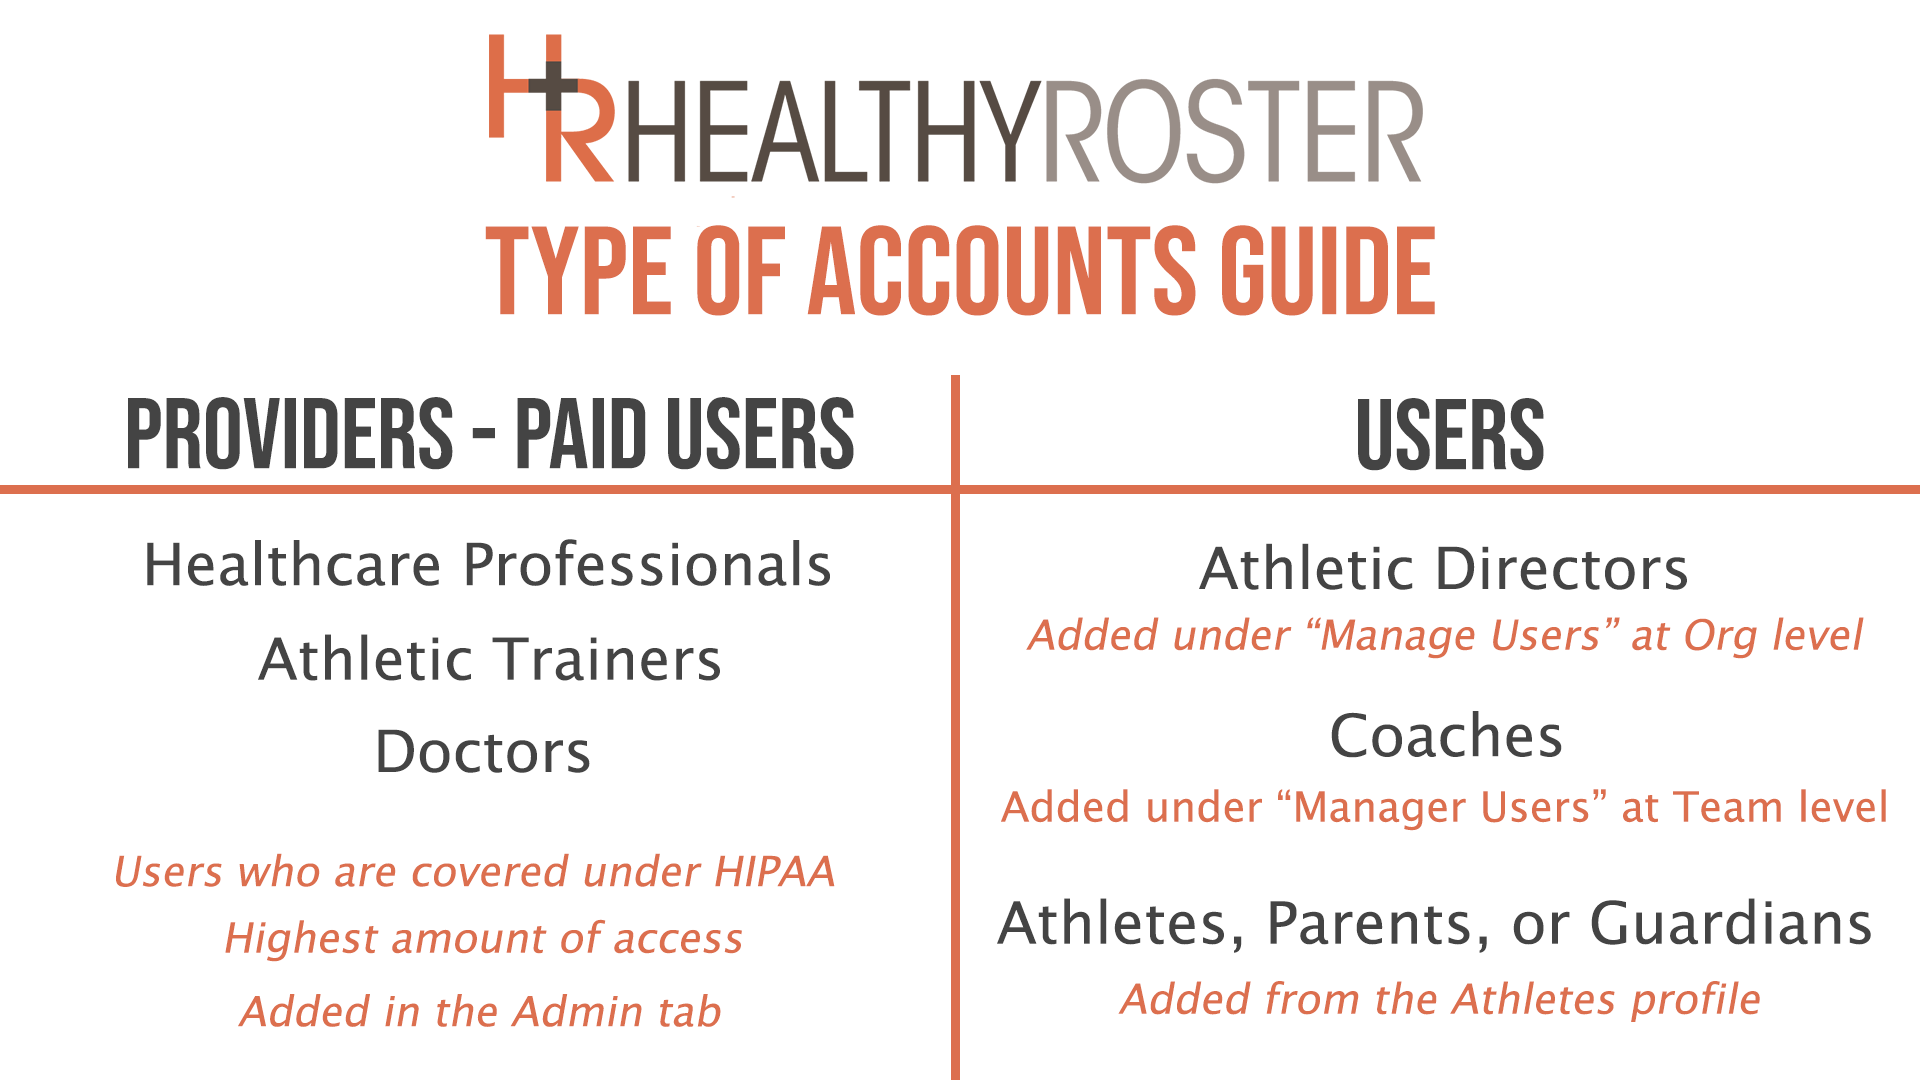 Healthy Roster Users Guide.png